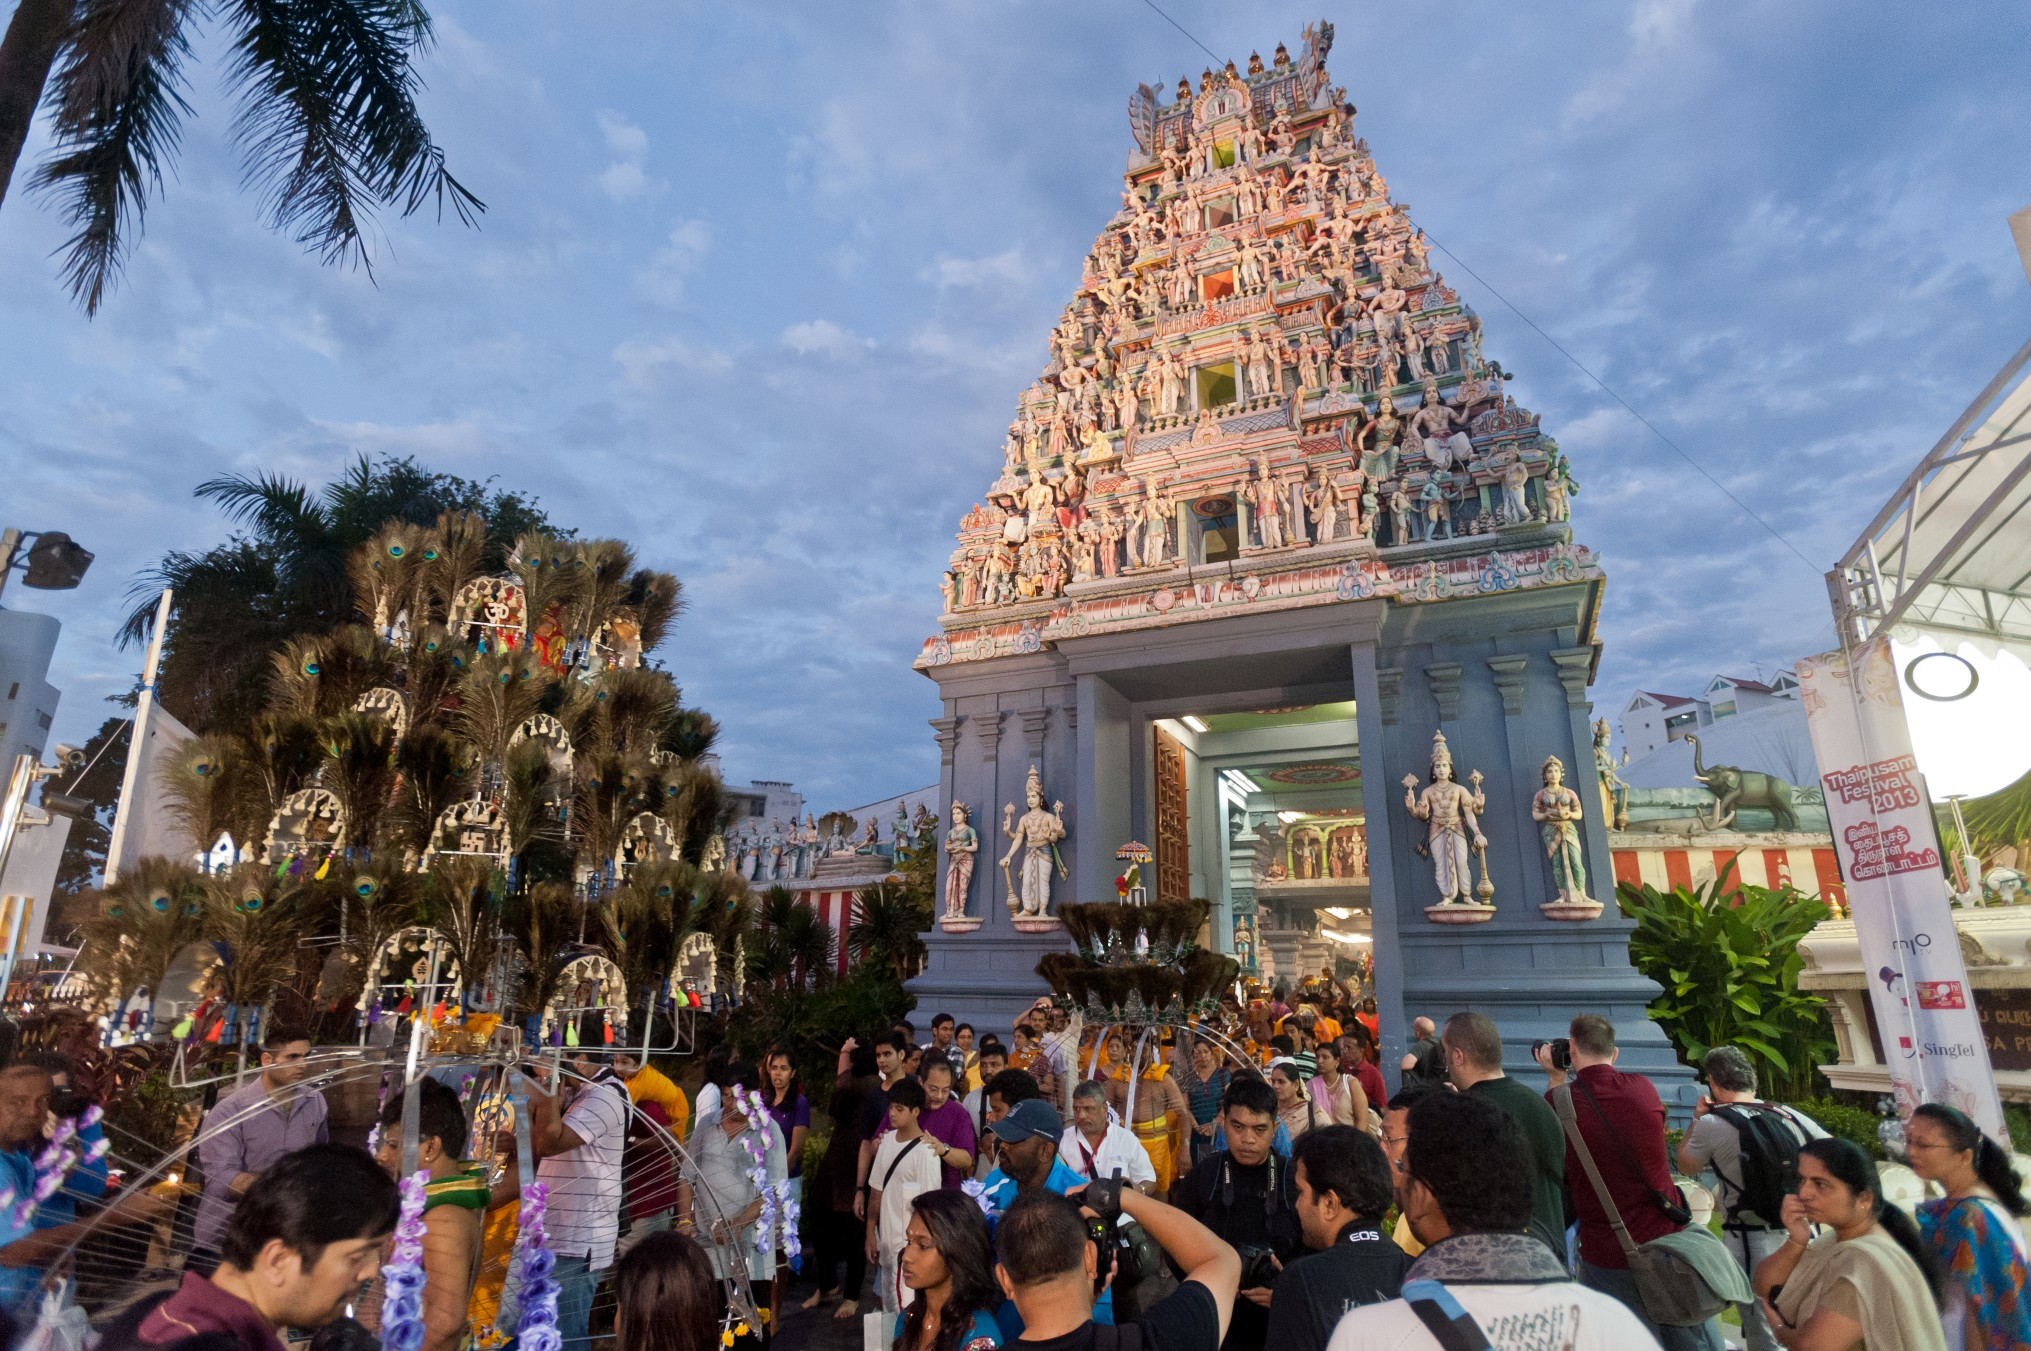 Thaipusam is a thanksgiving festival that involves asceticism and control over one's senses.